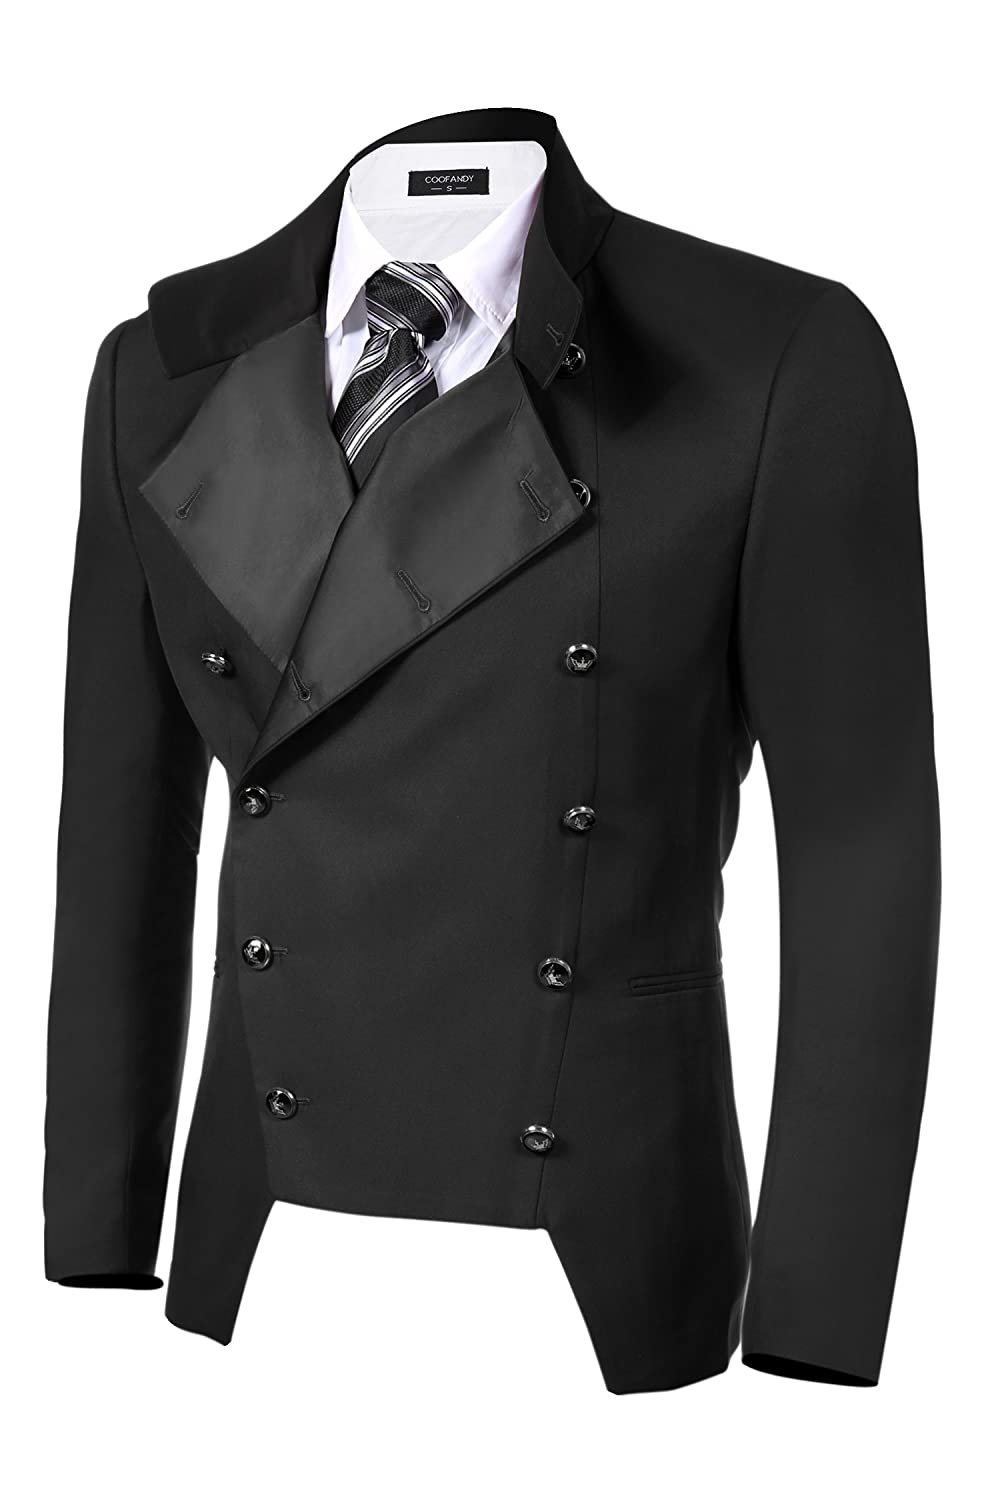 Victorian Men's Clothing Double-breasted Jacket Slim Fit Blazer $47.99 AT vintagedancer.com